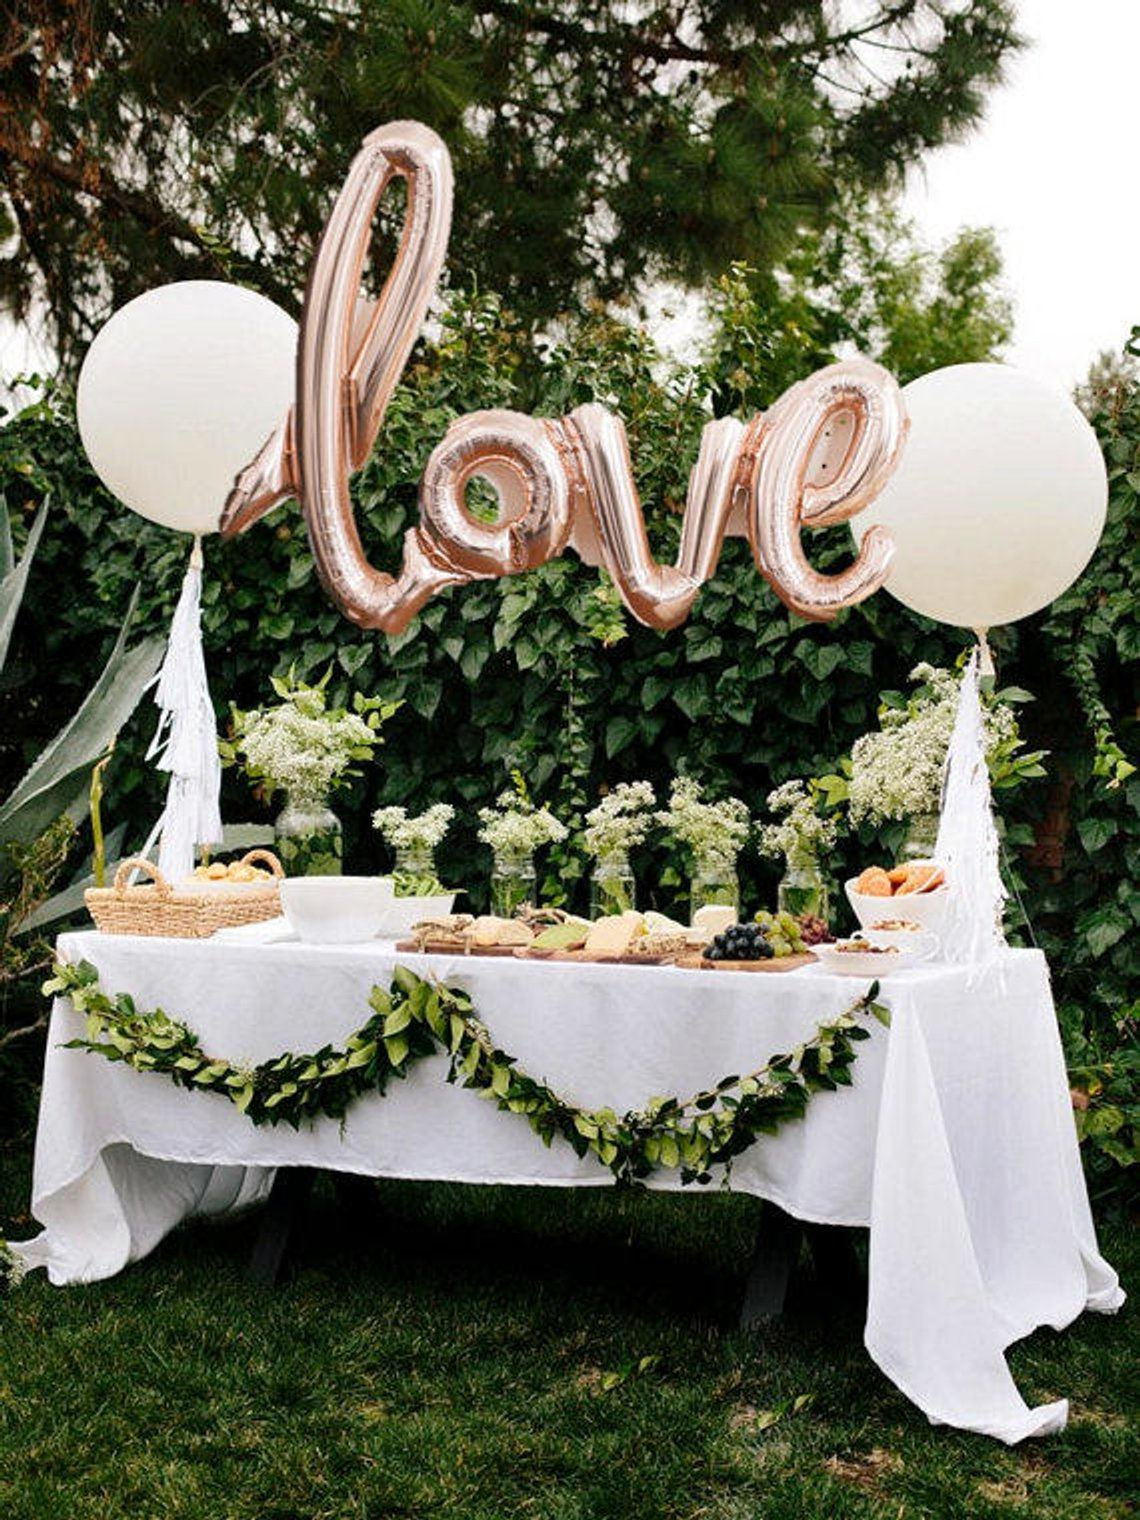 Balloon shaped like the word Love over a festive table as an engagement party idea